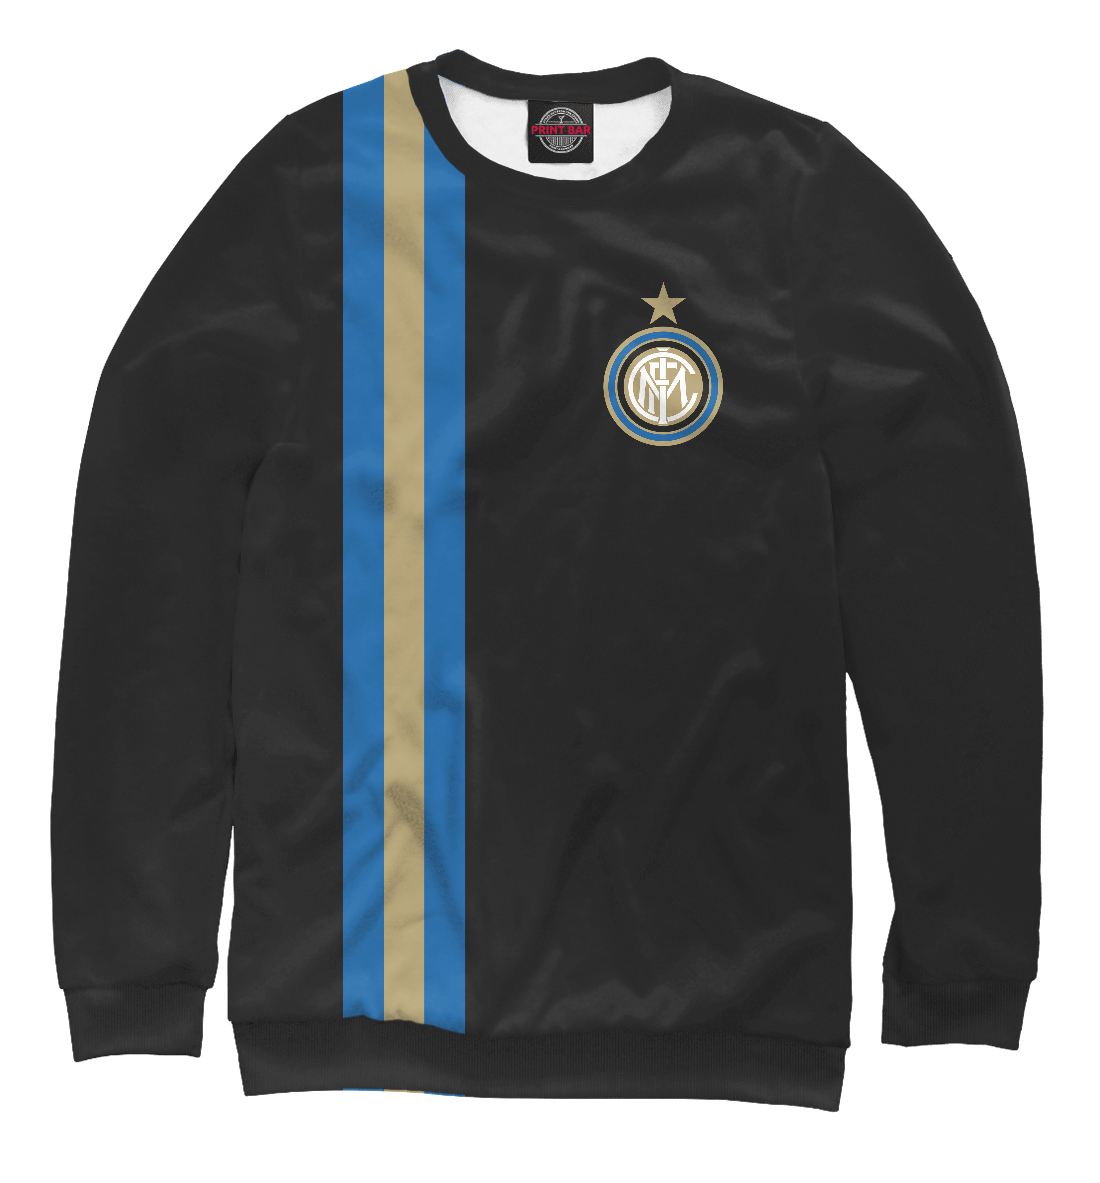 Купить Internazionale Milano / Line Collection, Printbar, Свитшоты, FTO-606449-swi-1